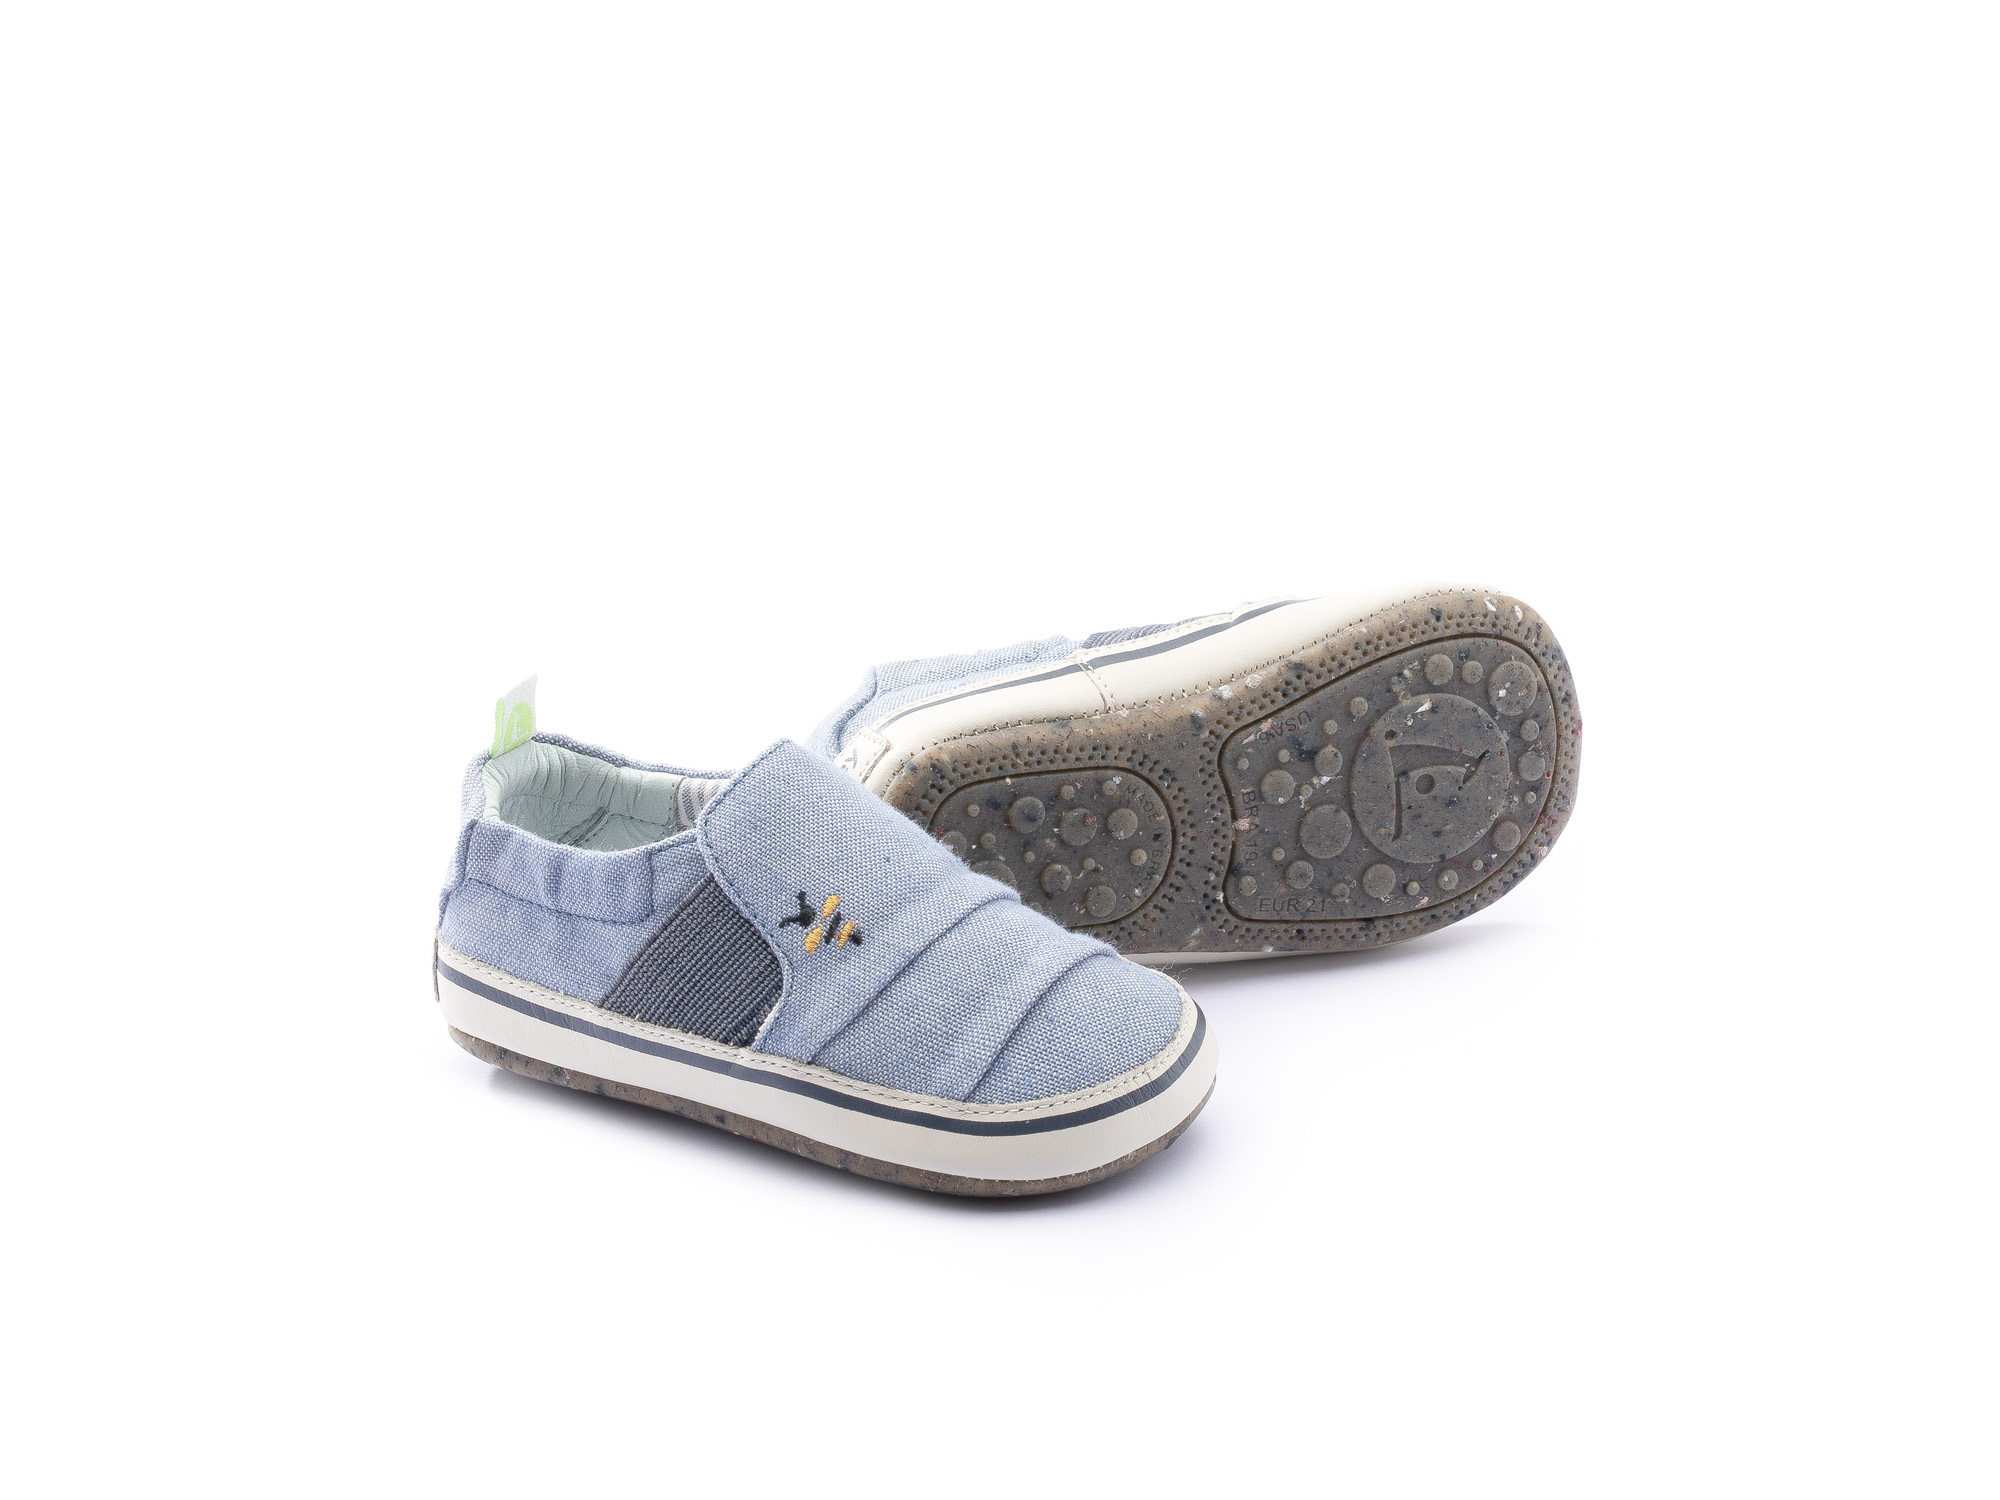 Sneaker Casual Slippy Light Blue Canvas Beeswax/ Tapioca Baby 0 à 2 anos - 0